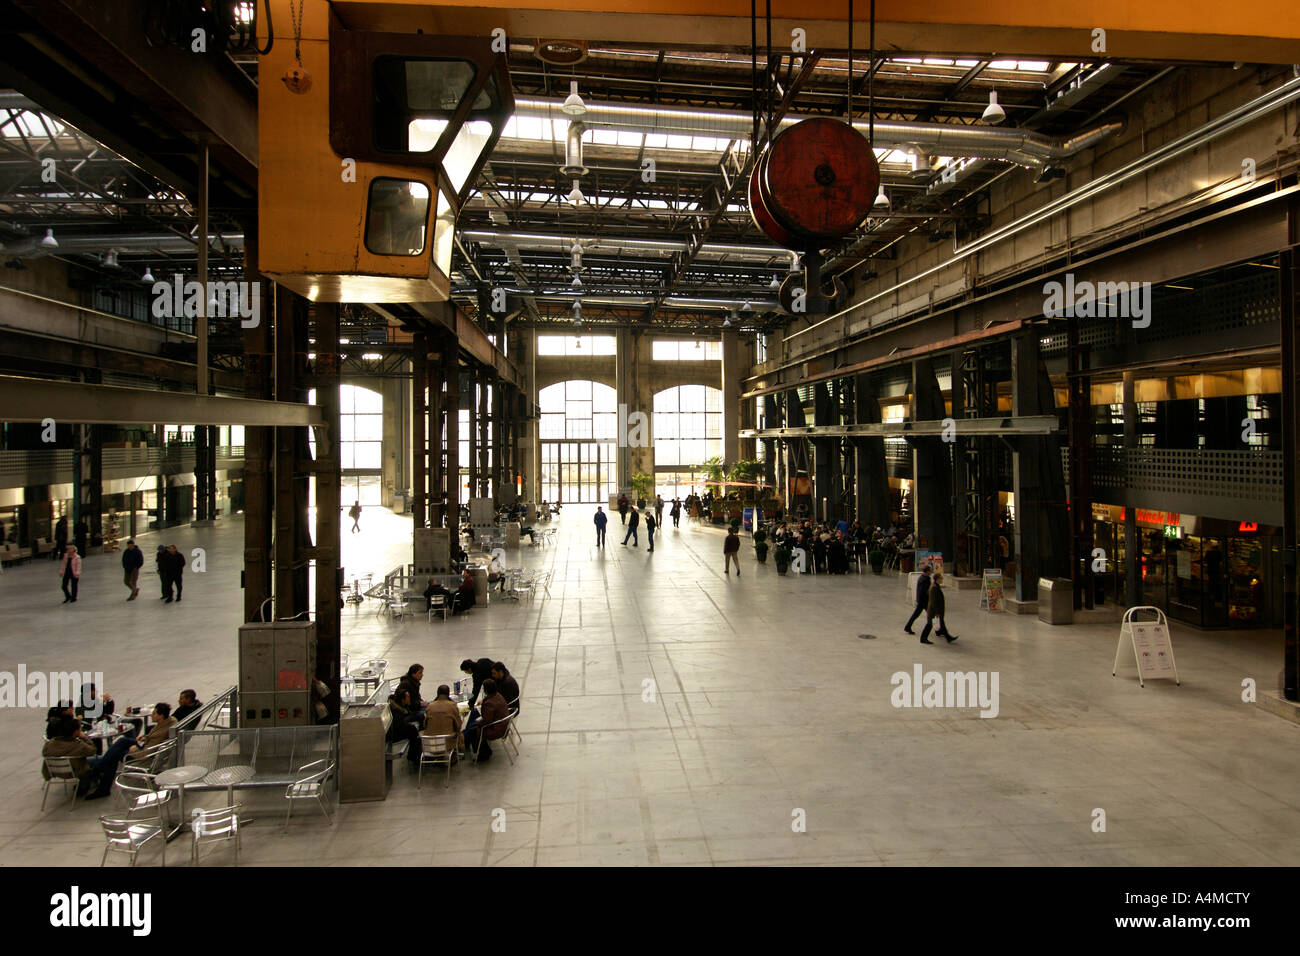 The interior of the Puls 5 centre, a former steel foundry in the culturally transformed area of West Zürich. - Stock Image